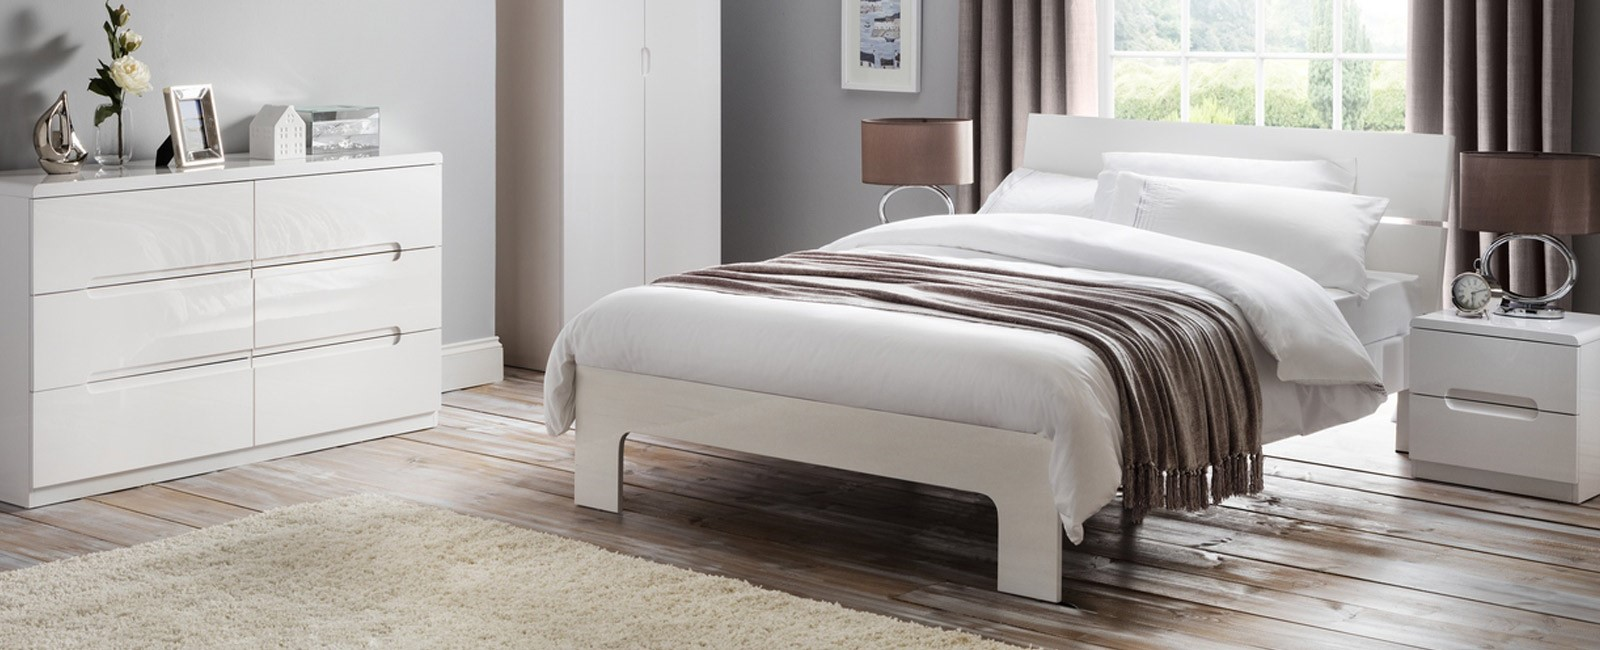 Up To 55% OFF this Tuesday 31st May only on ALL beds, mattresses & bedroom furniture With FREE Delivery!!